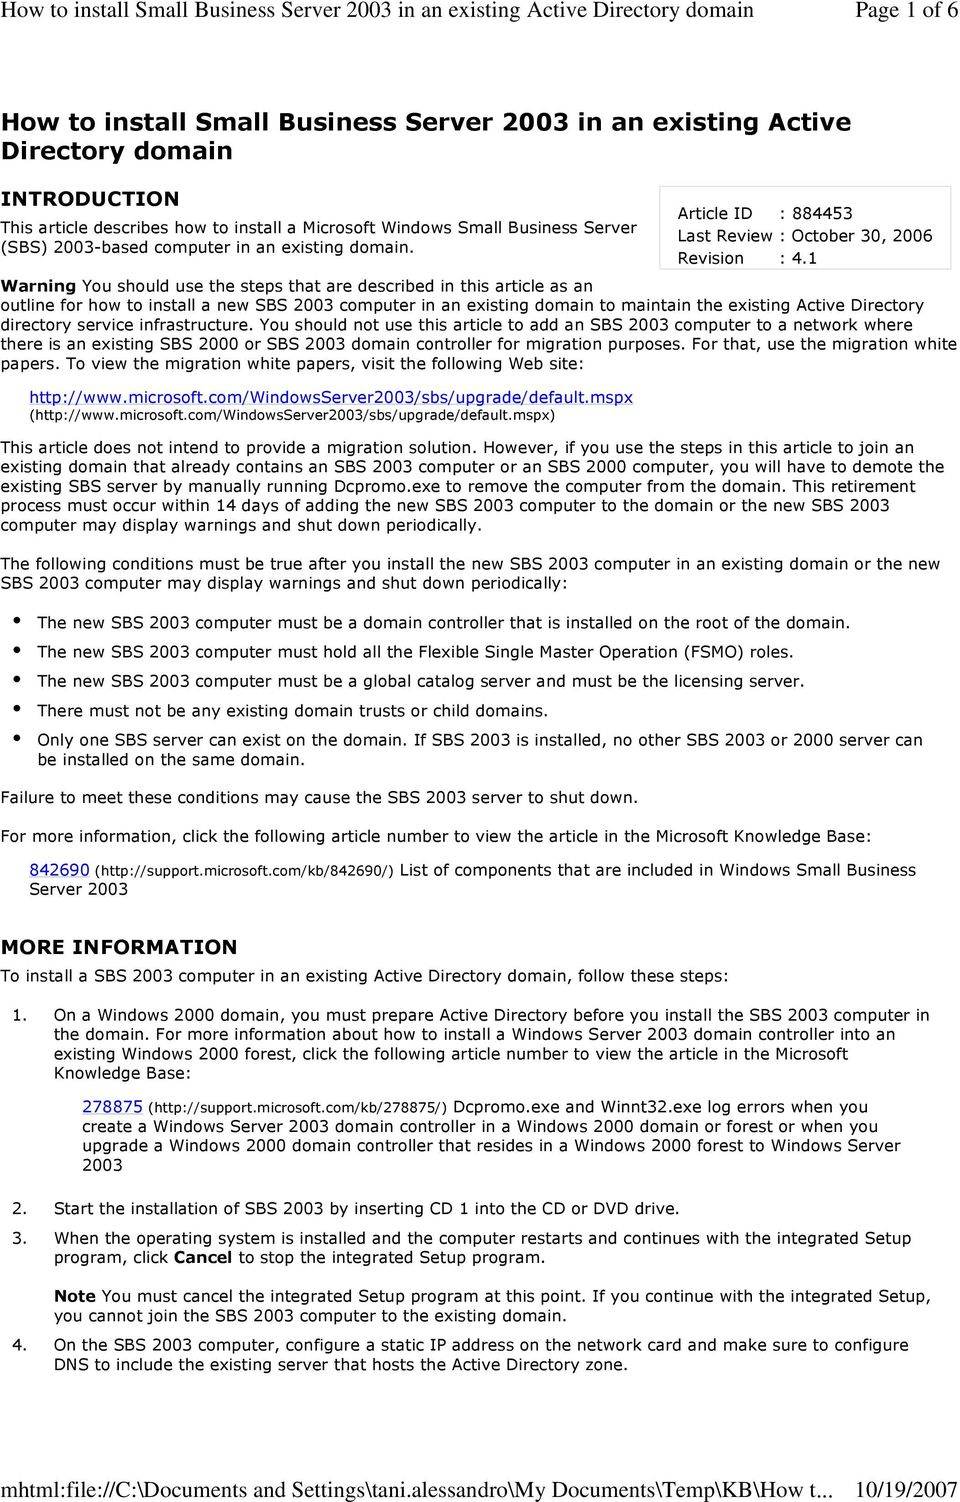 Warning You should use the steps that are described in this article as an outline for how to install a new SBS 2003 computer in an existing domain to maintain the existing Active Directory directory